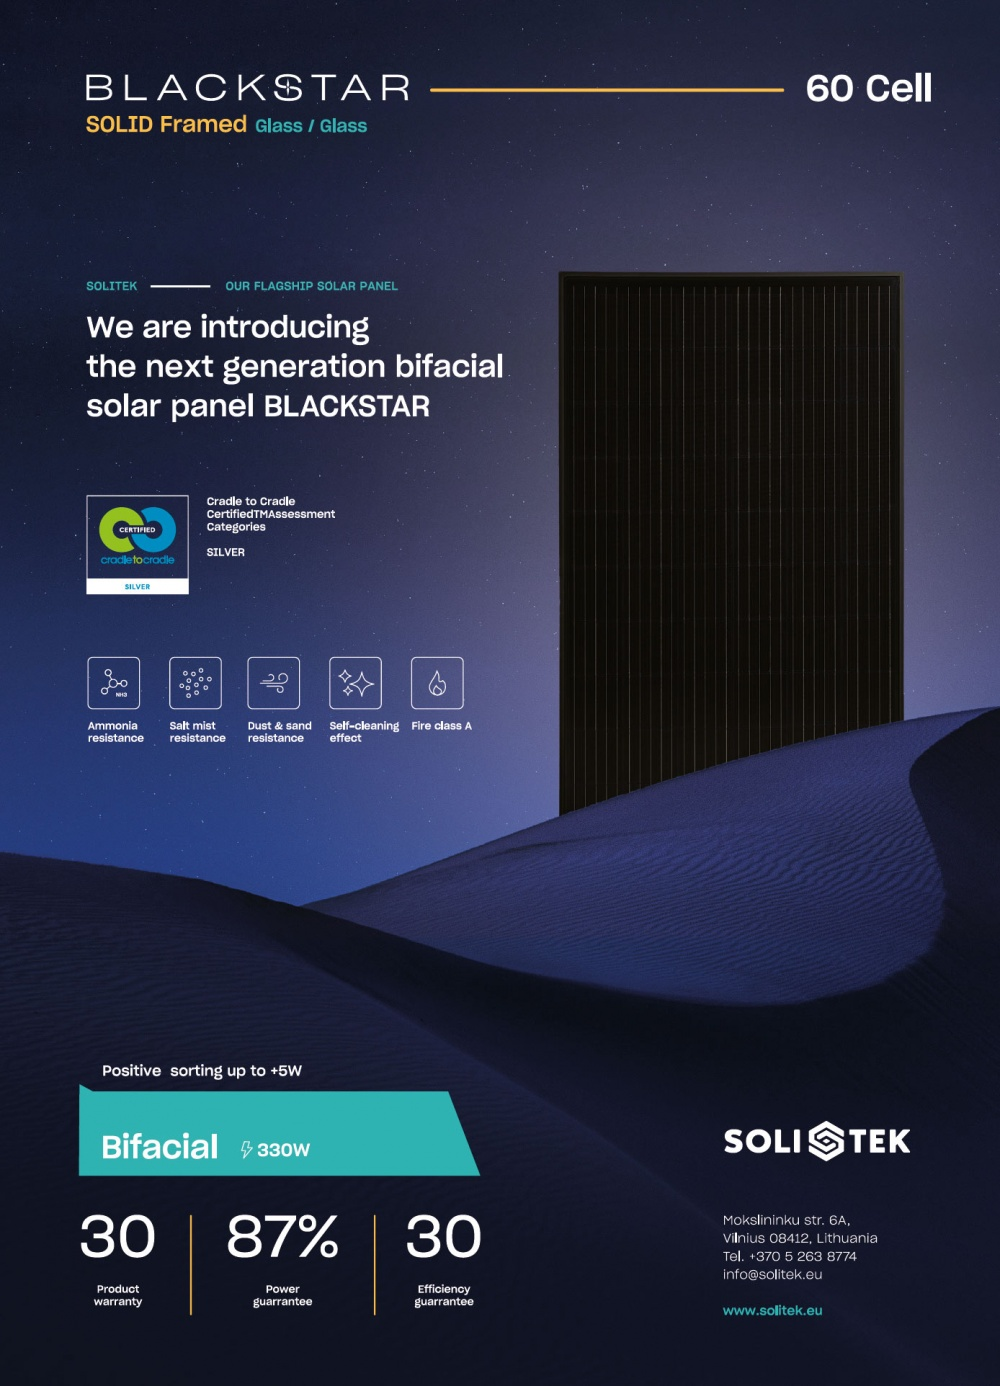 BLACKSTAR - new ultimate solar panel from SoliTek